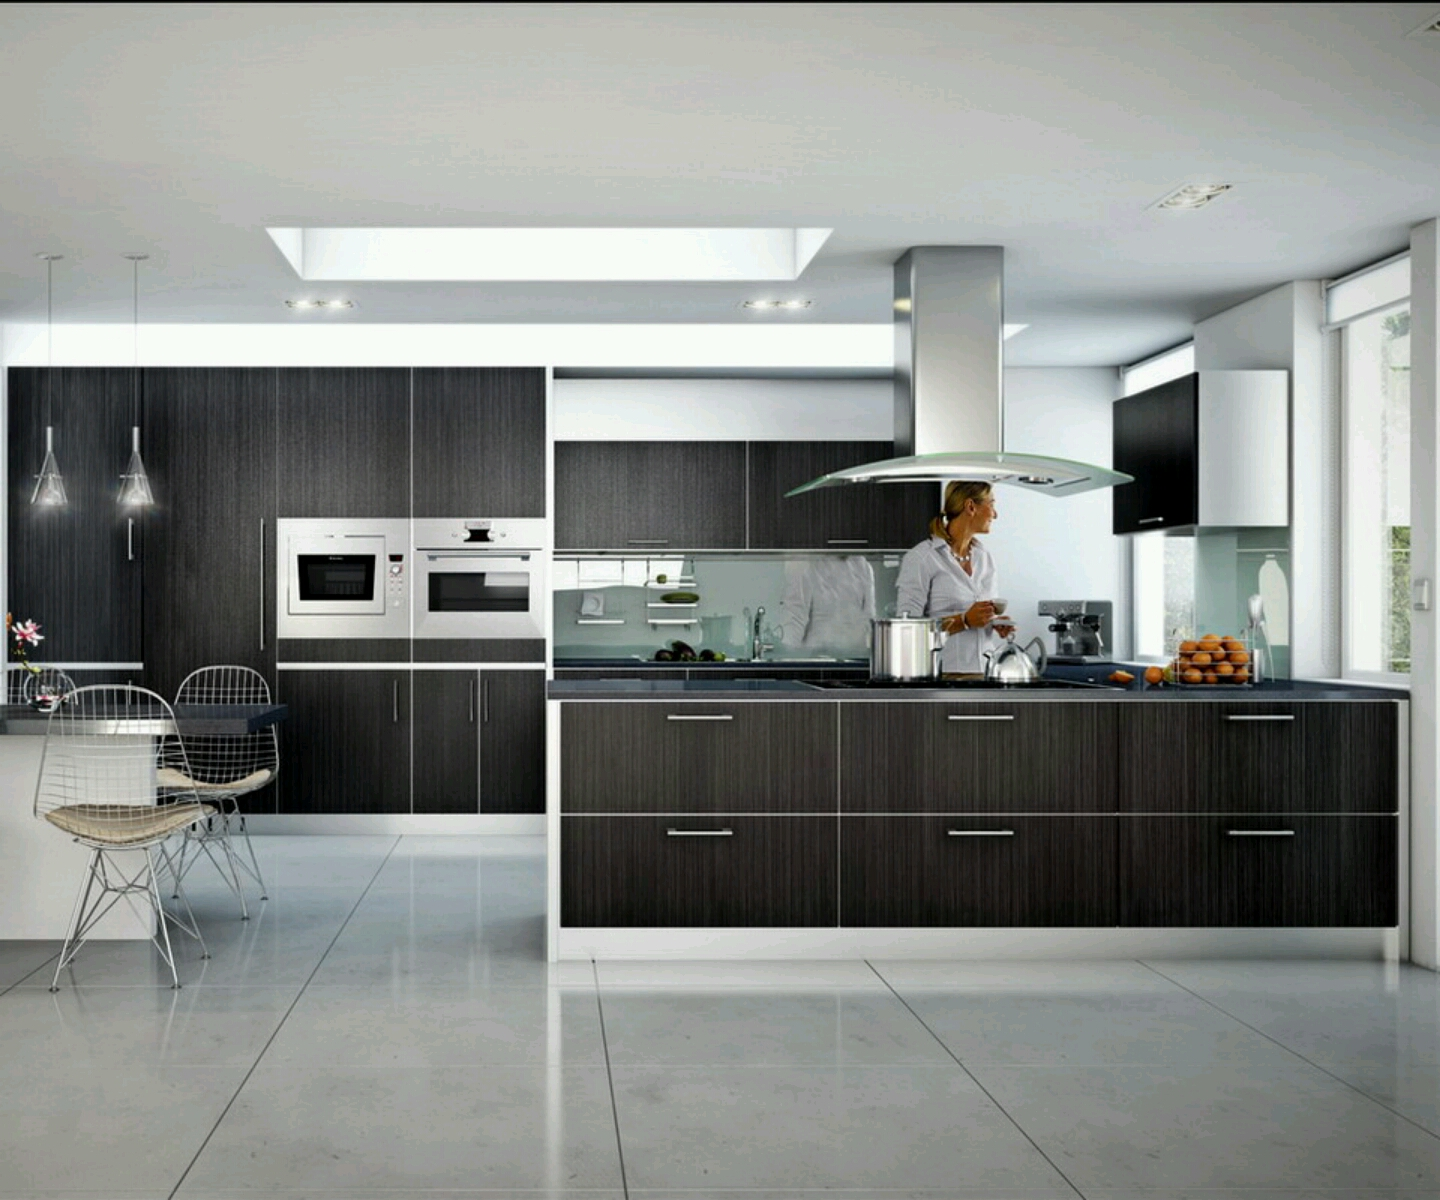 modern kitchen design ideas 2013 modern kitchen designs photo gallery decorating ideas 441